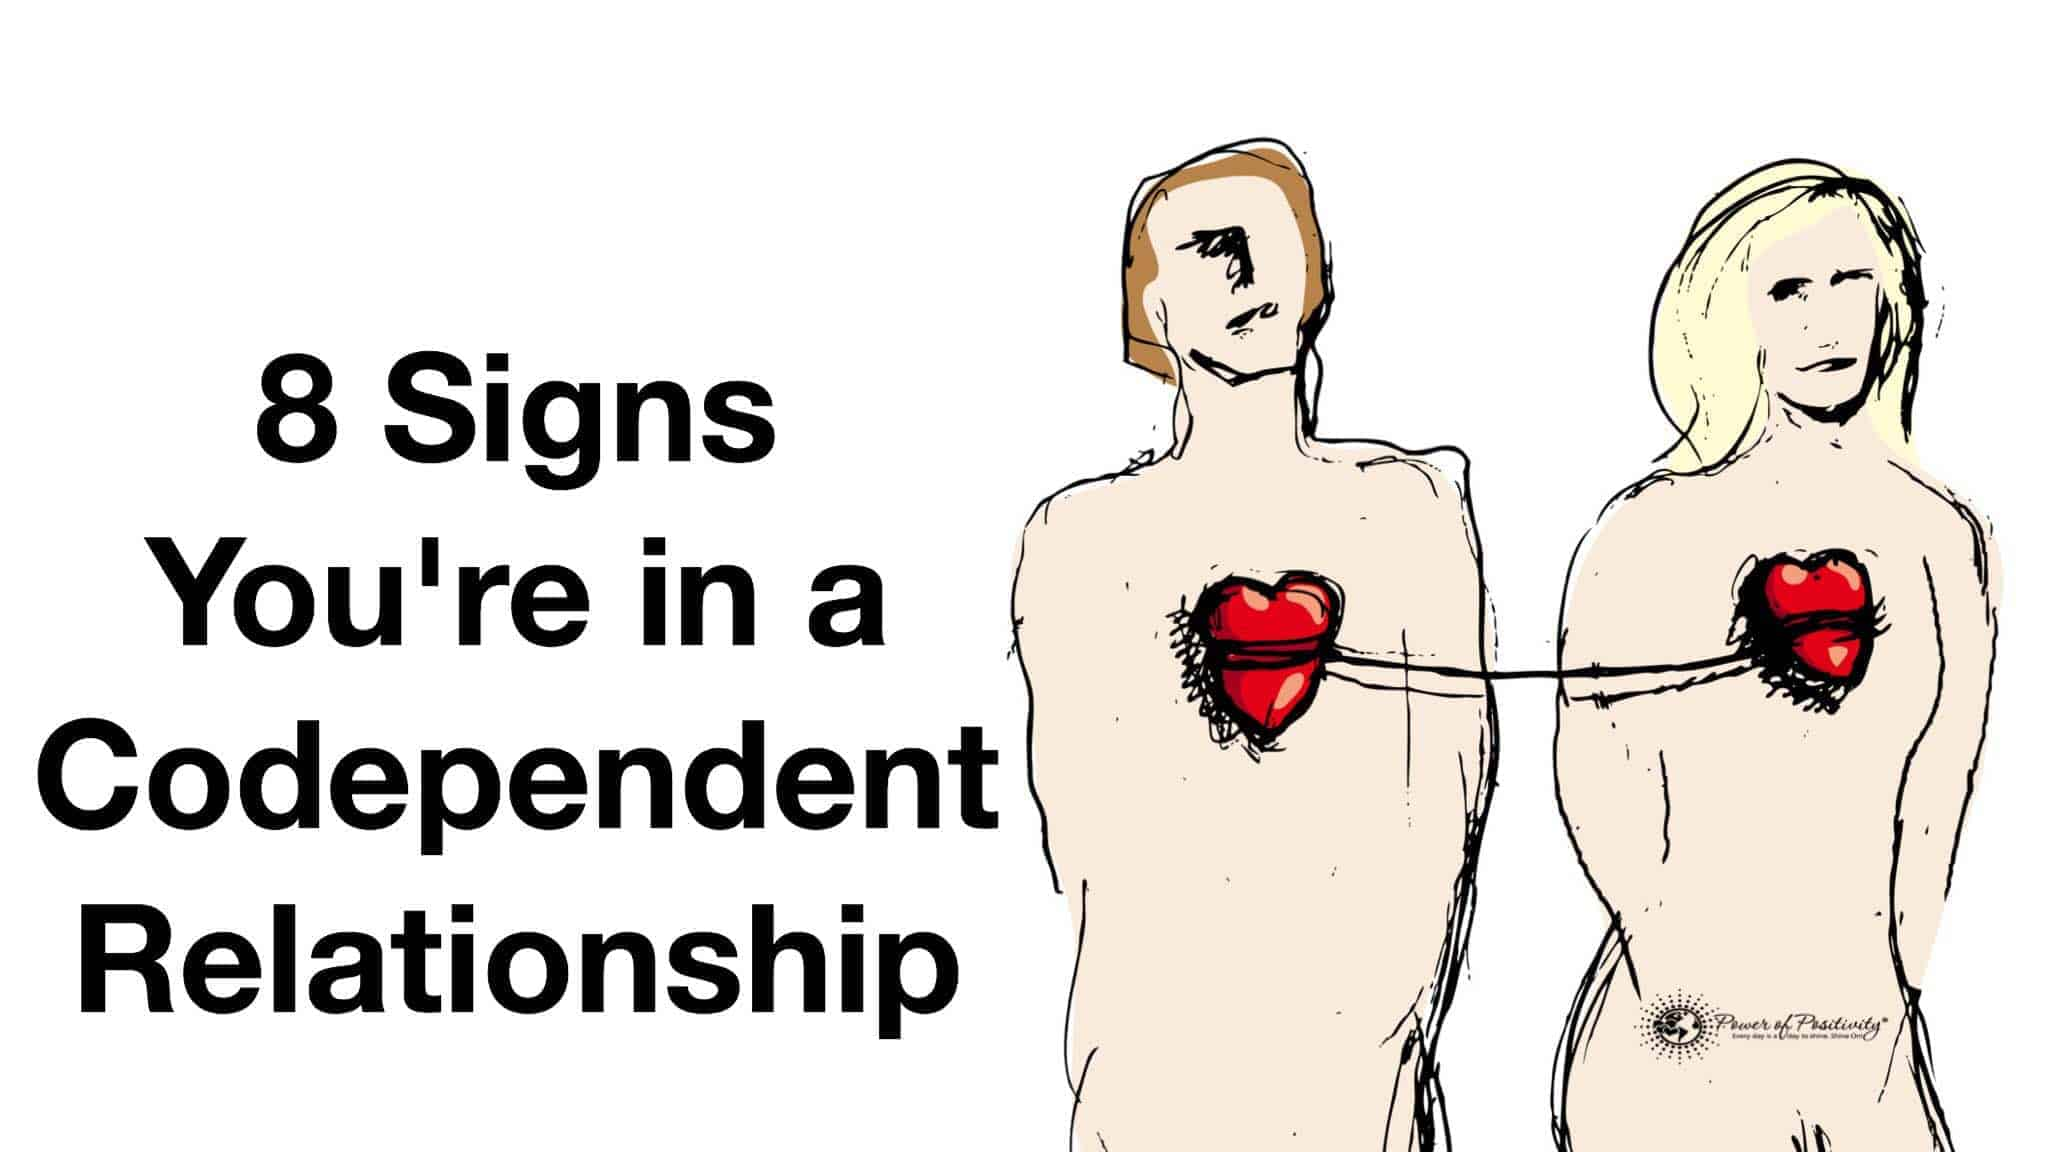 8 Signs You Re In A Codependent Relationship